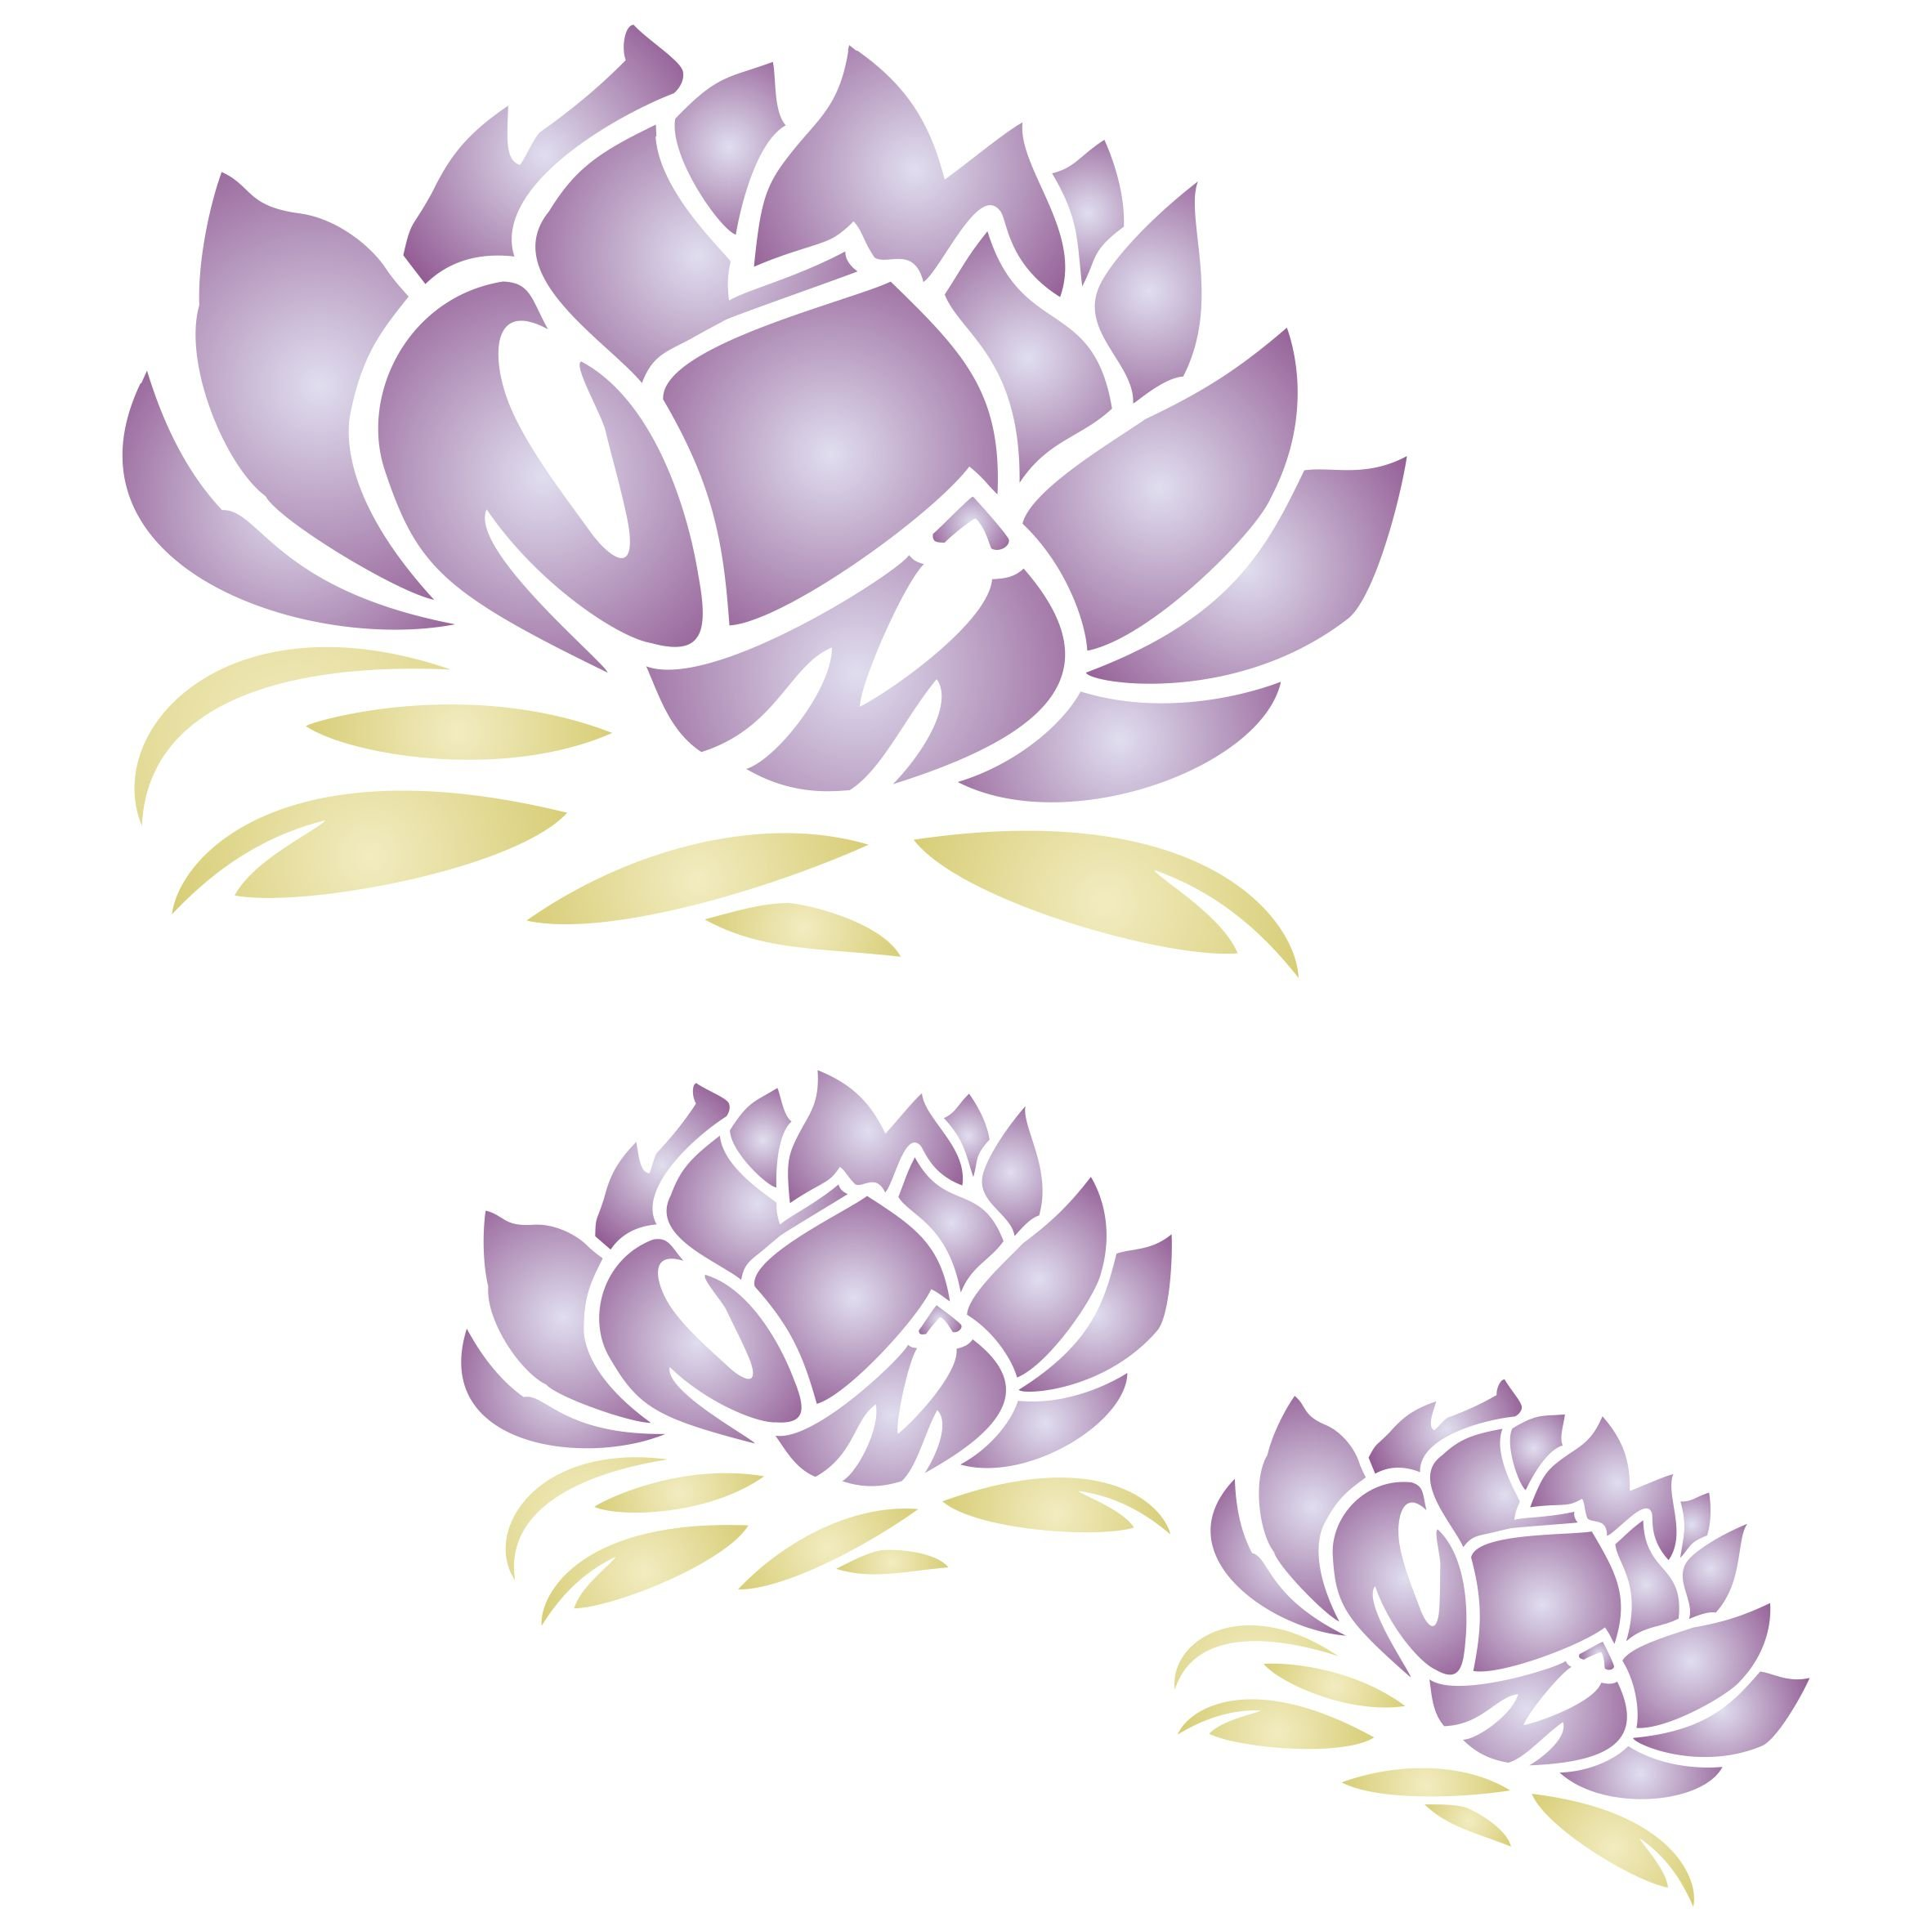 "Lotus Blossom Mural Stencil - (size 10.5"" x 10.5"") Reusable Wall Stencils for Painting - Best Quality Mural Wall Art Ideas - Use on Walls, Floors, Fabrics, Glass, Wood, and More…"